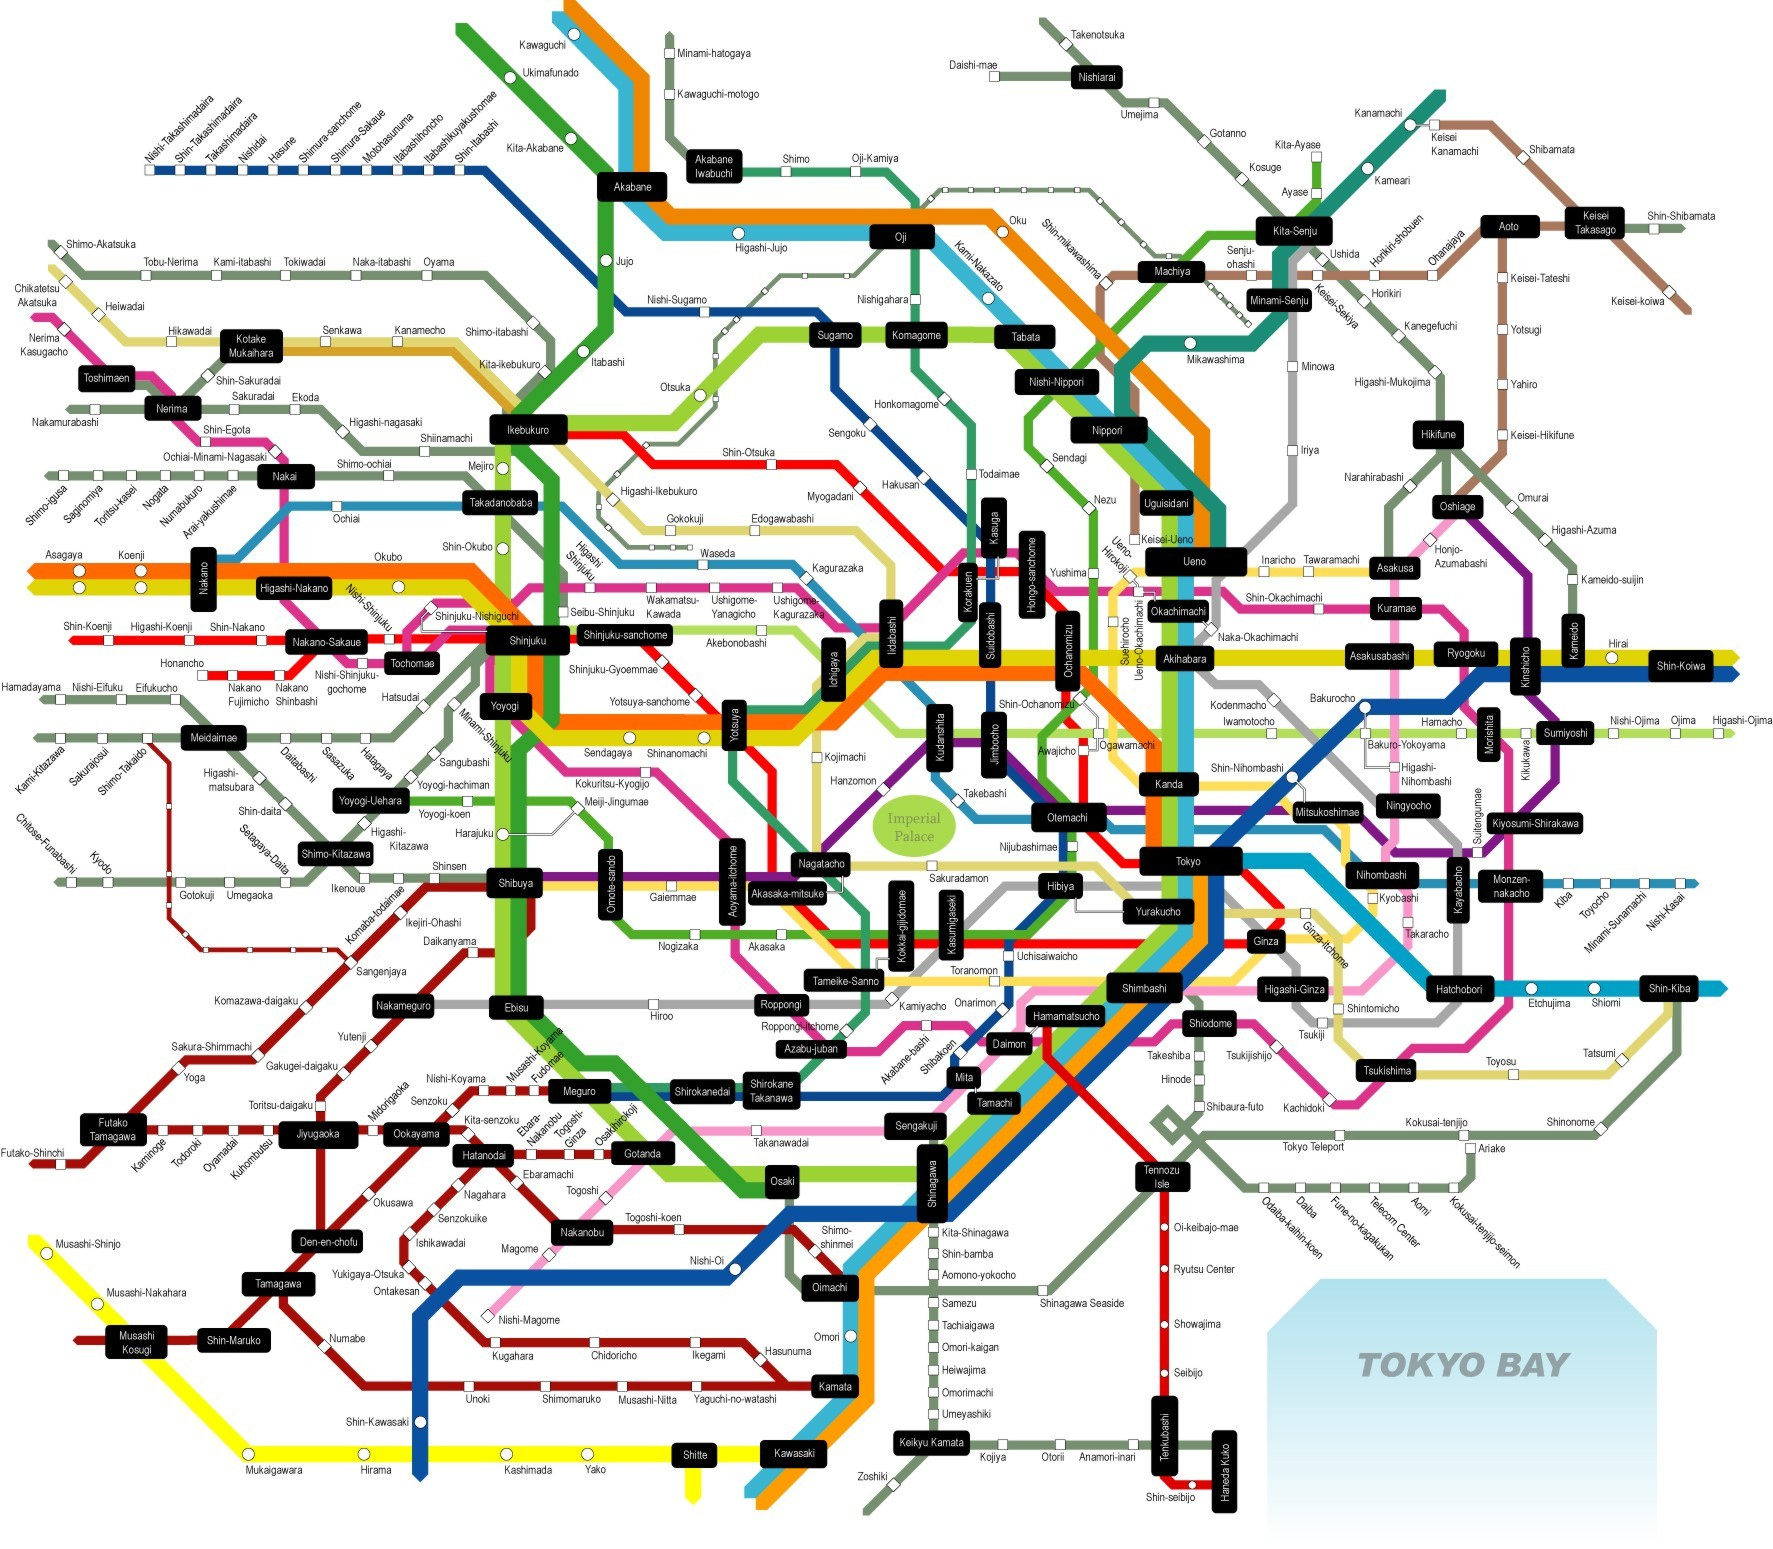 Tokyo Subway Map Tokyo Japan mappery – Tourist Map of Tokyo